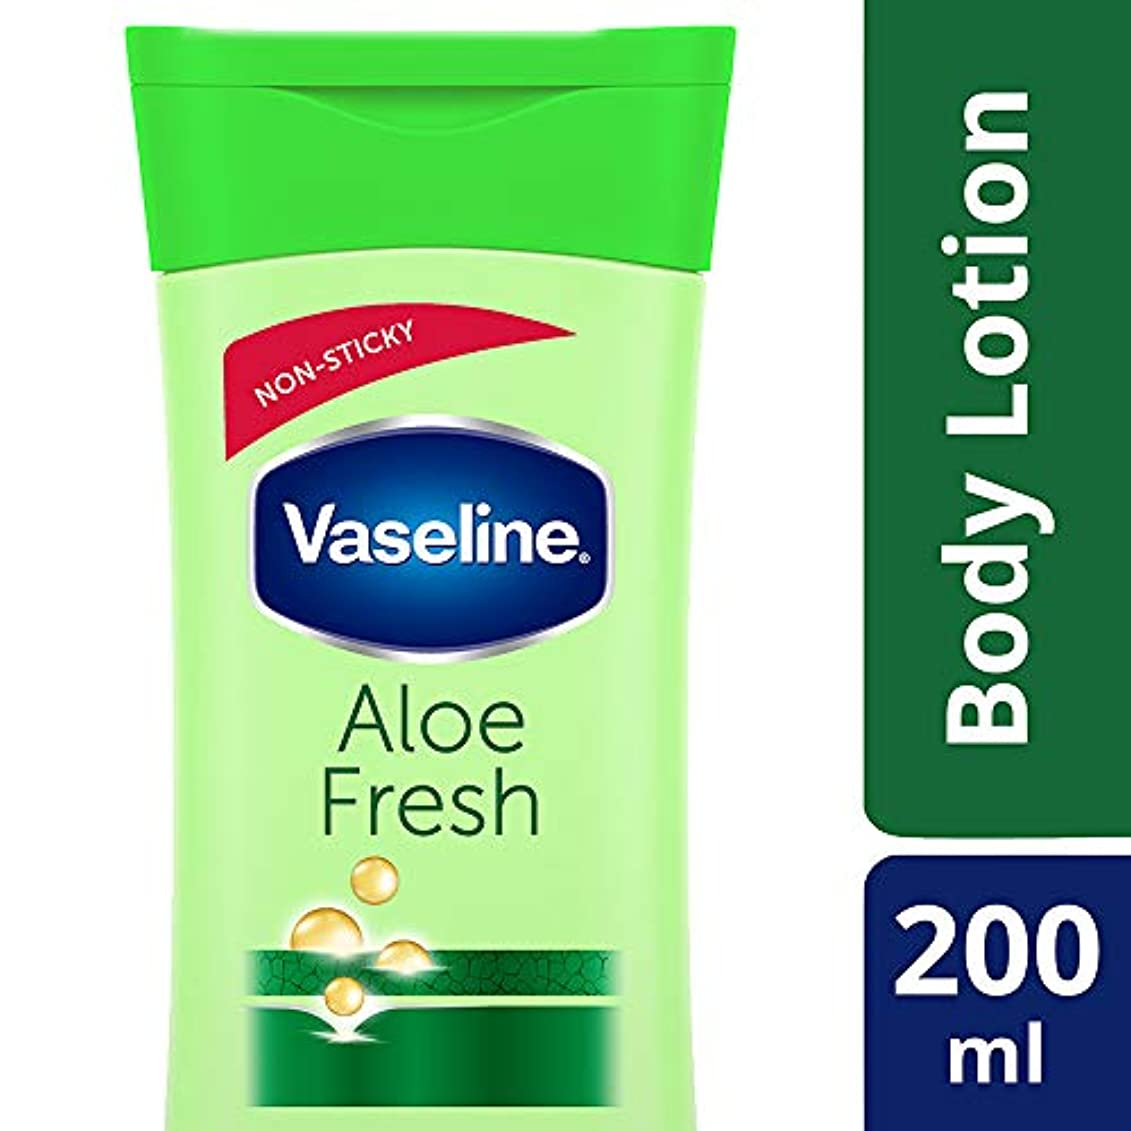 代表団疑問に思う雑品Vaseline Intensive Care Aloe Fresh Body Lotion, 200 ml